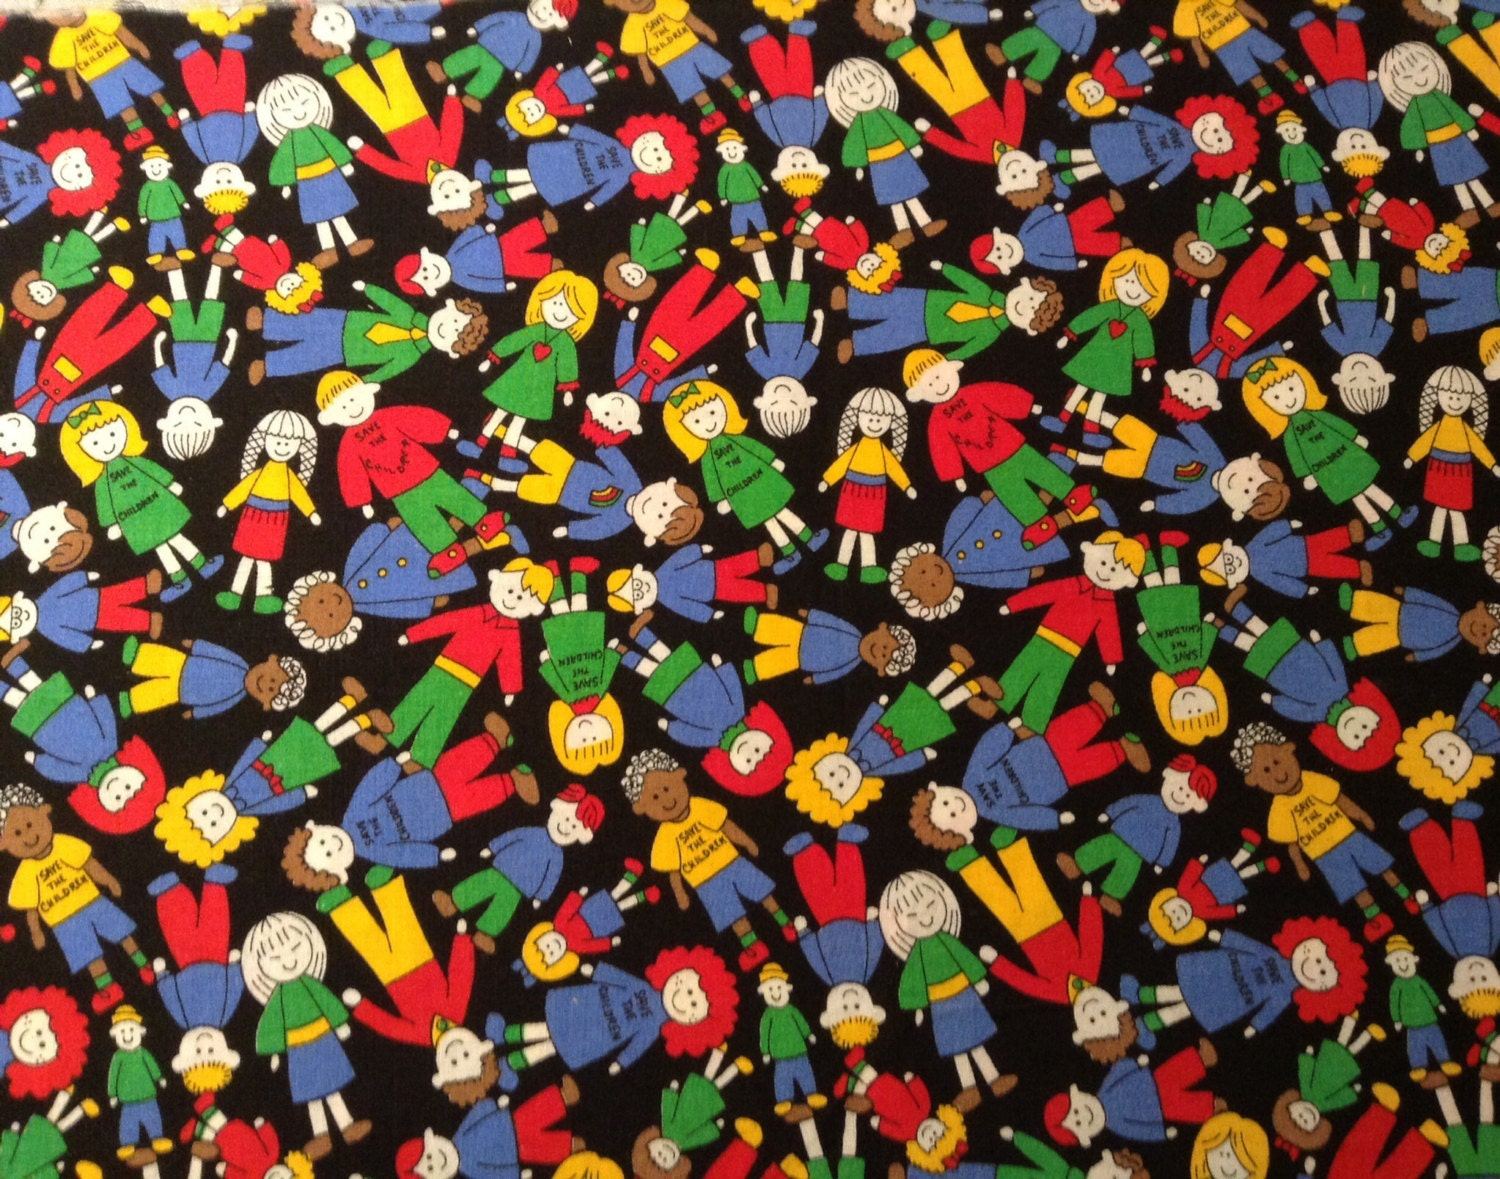 Save the children quilting fabric vintage fabric 1 3 yard for Children s character fabric